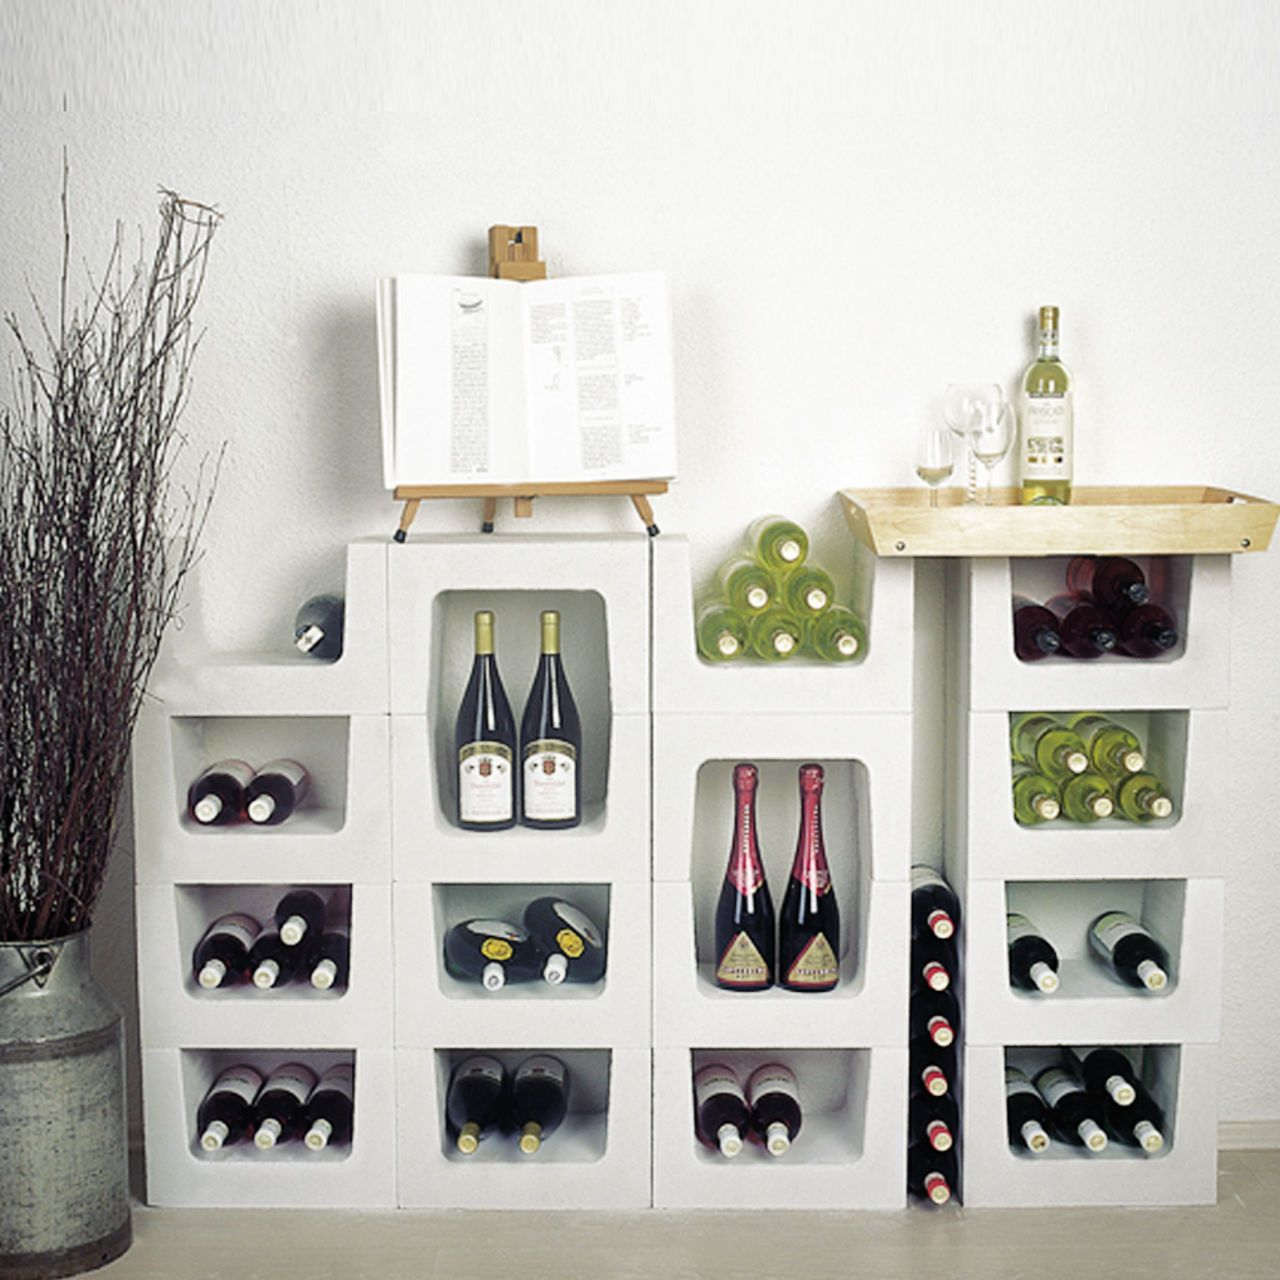 weinregalsteine f r die weinlagerung weinregale. Black Bedroom Furniture Sets. Home Design Ideas